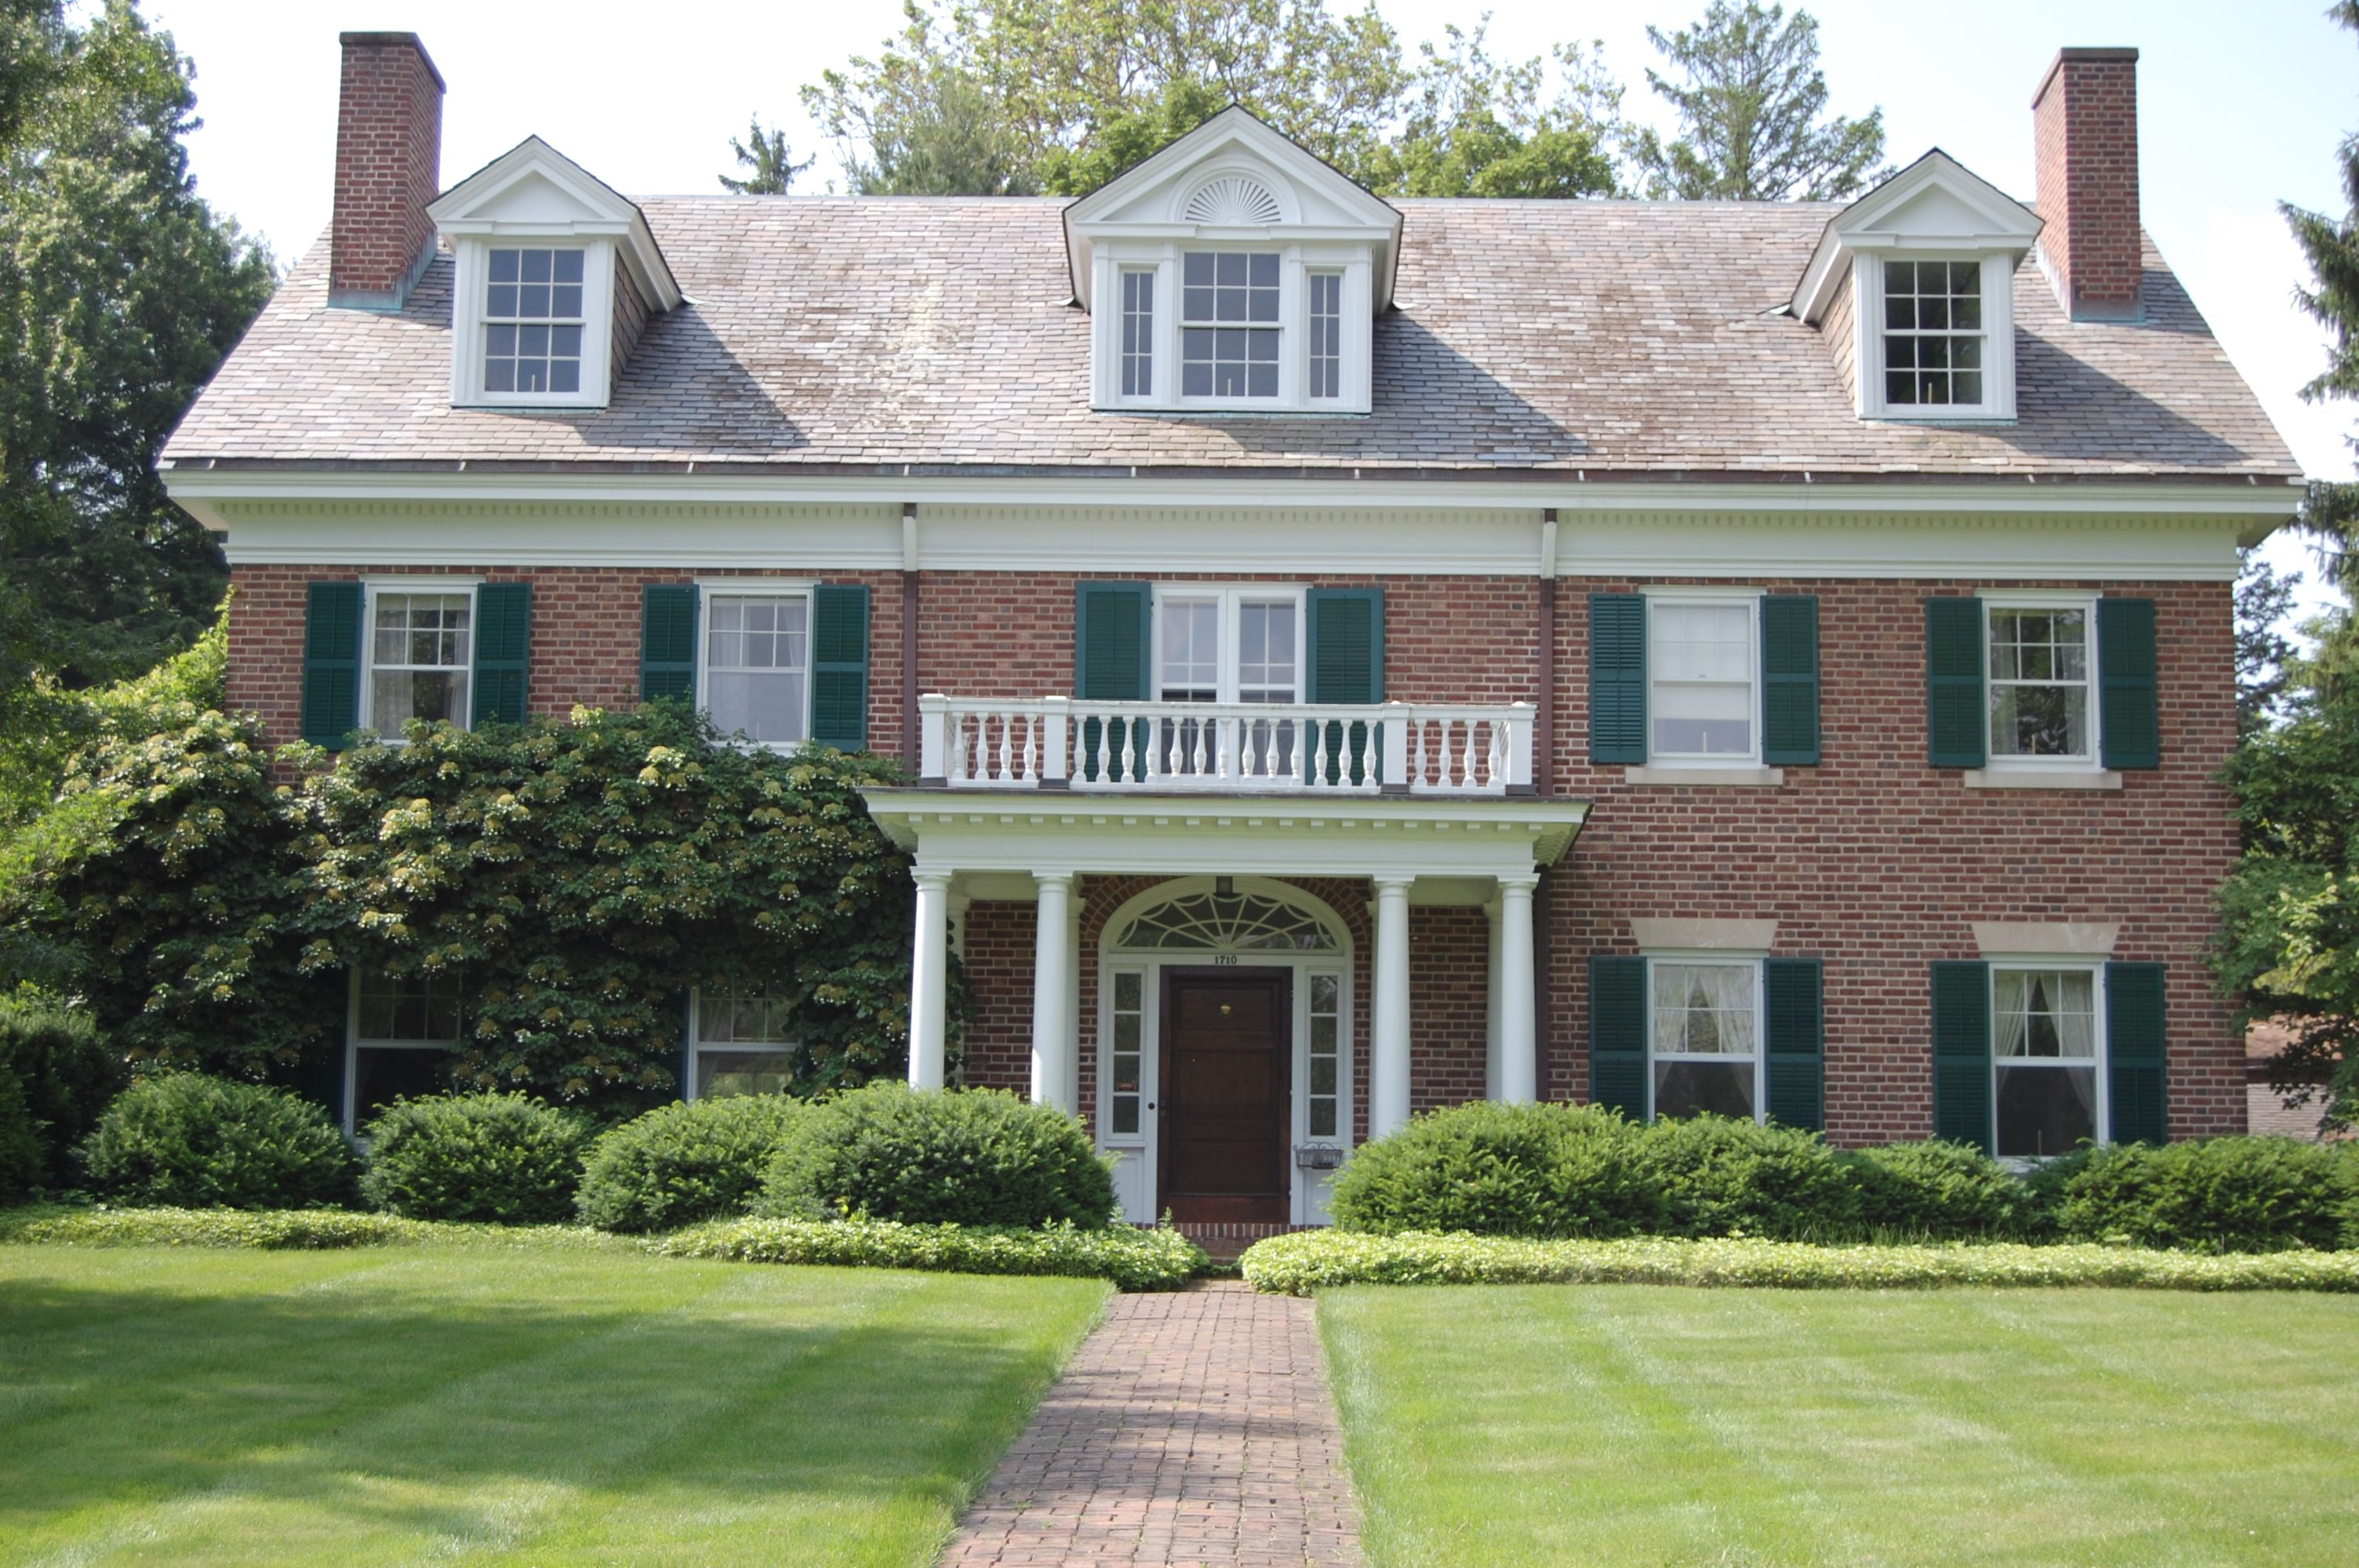 Colonial Style Homes Pictures Of Georgian Colonial Revival Houses Are A Symmetrical Beauty